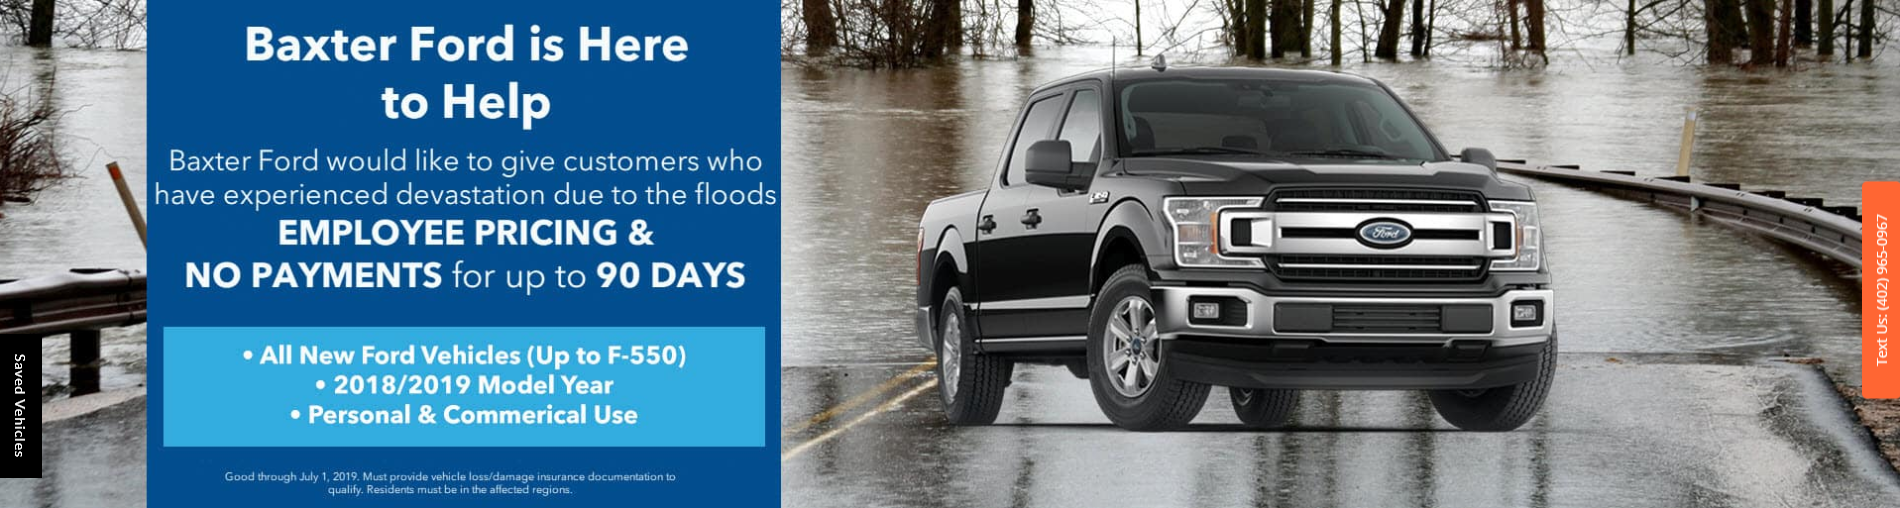 Baxter Ford Flood Relief